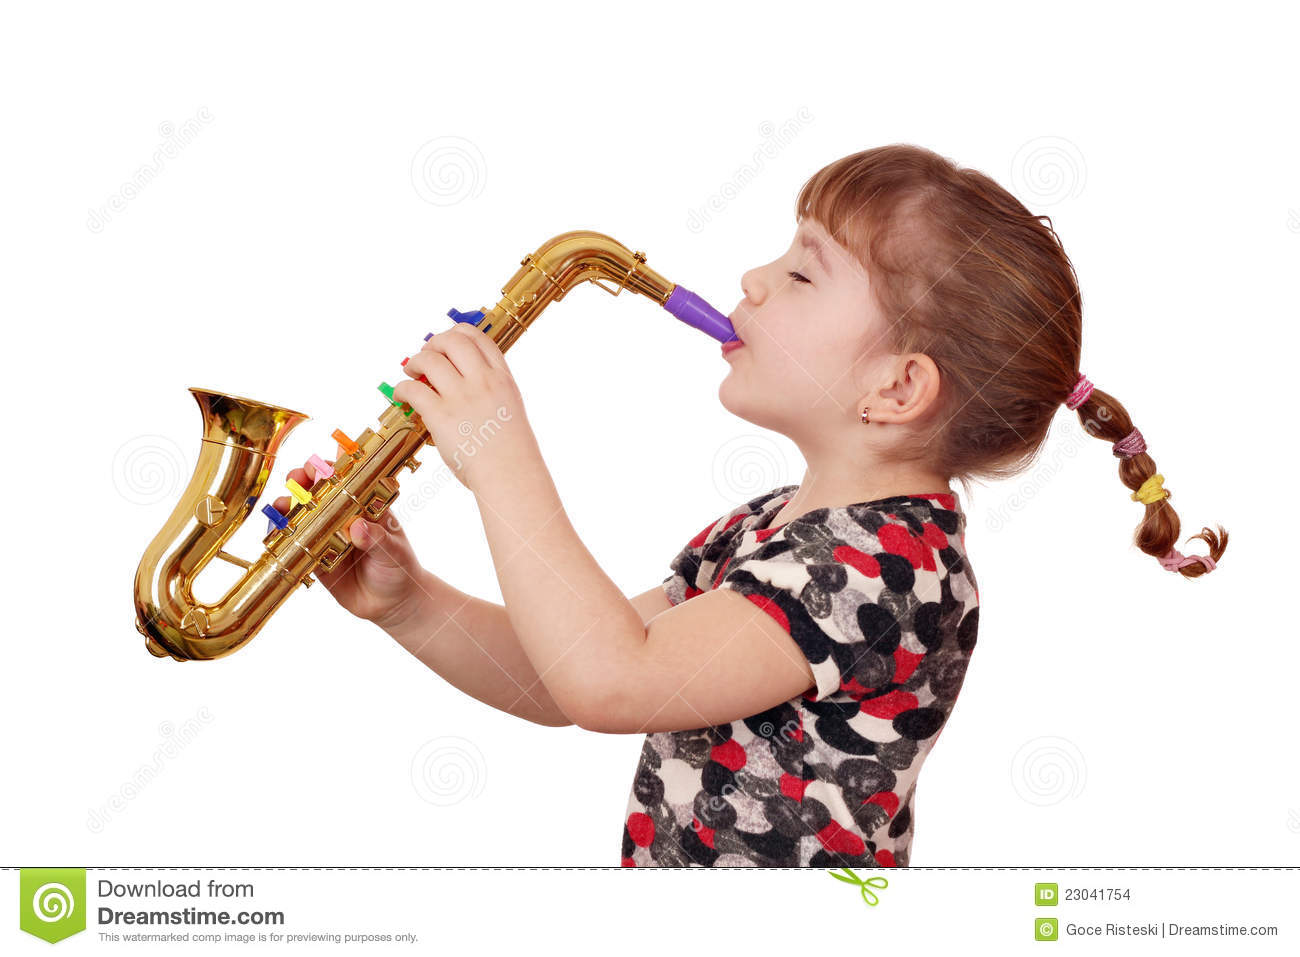 playing a saxophone Download 2,819 playing sax stock photos for free or amazingly low rates new users enjoy 60% off 86,807,064 stock photos online.